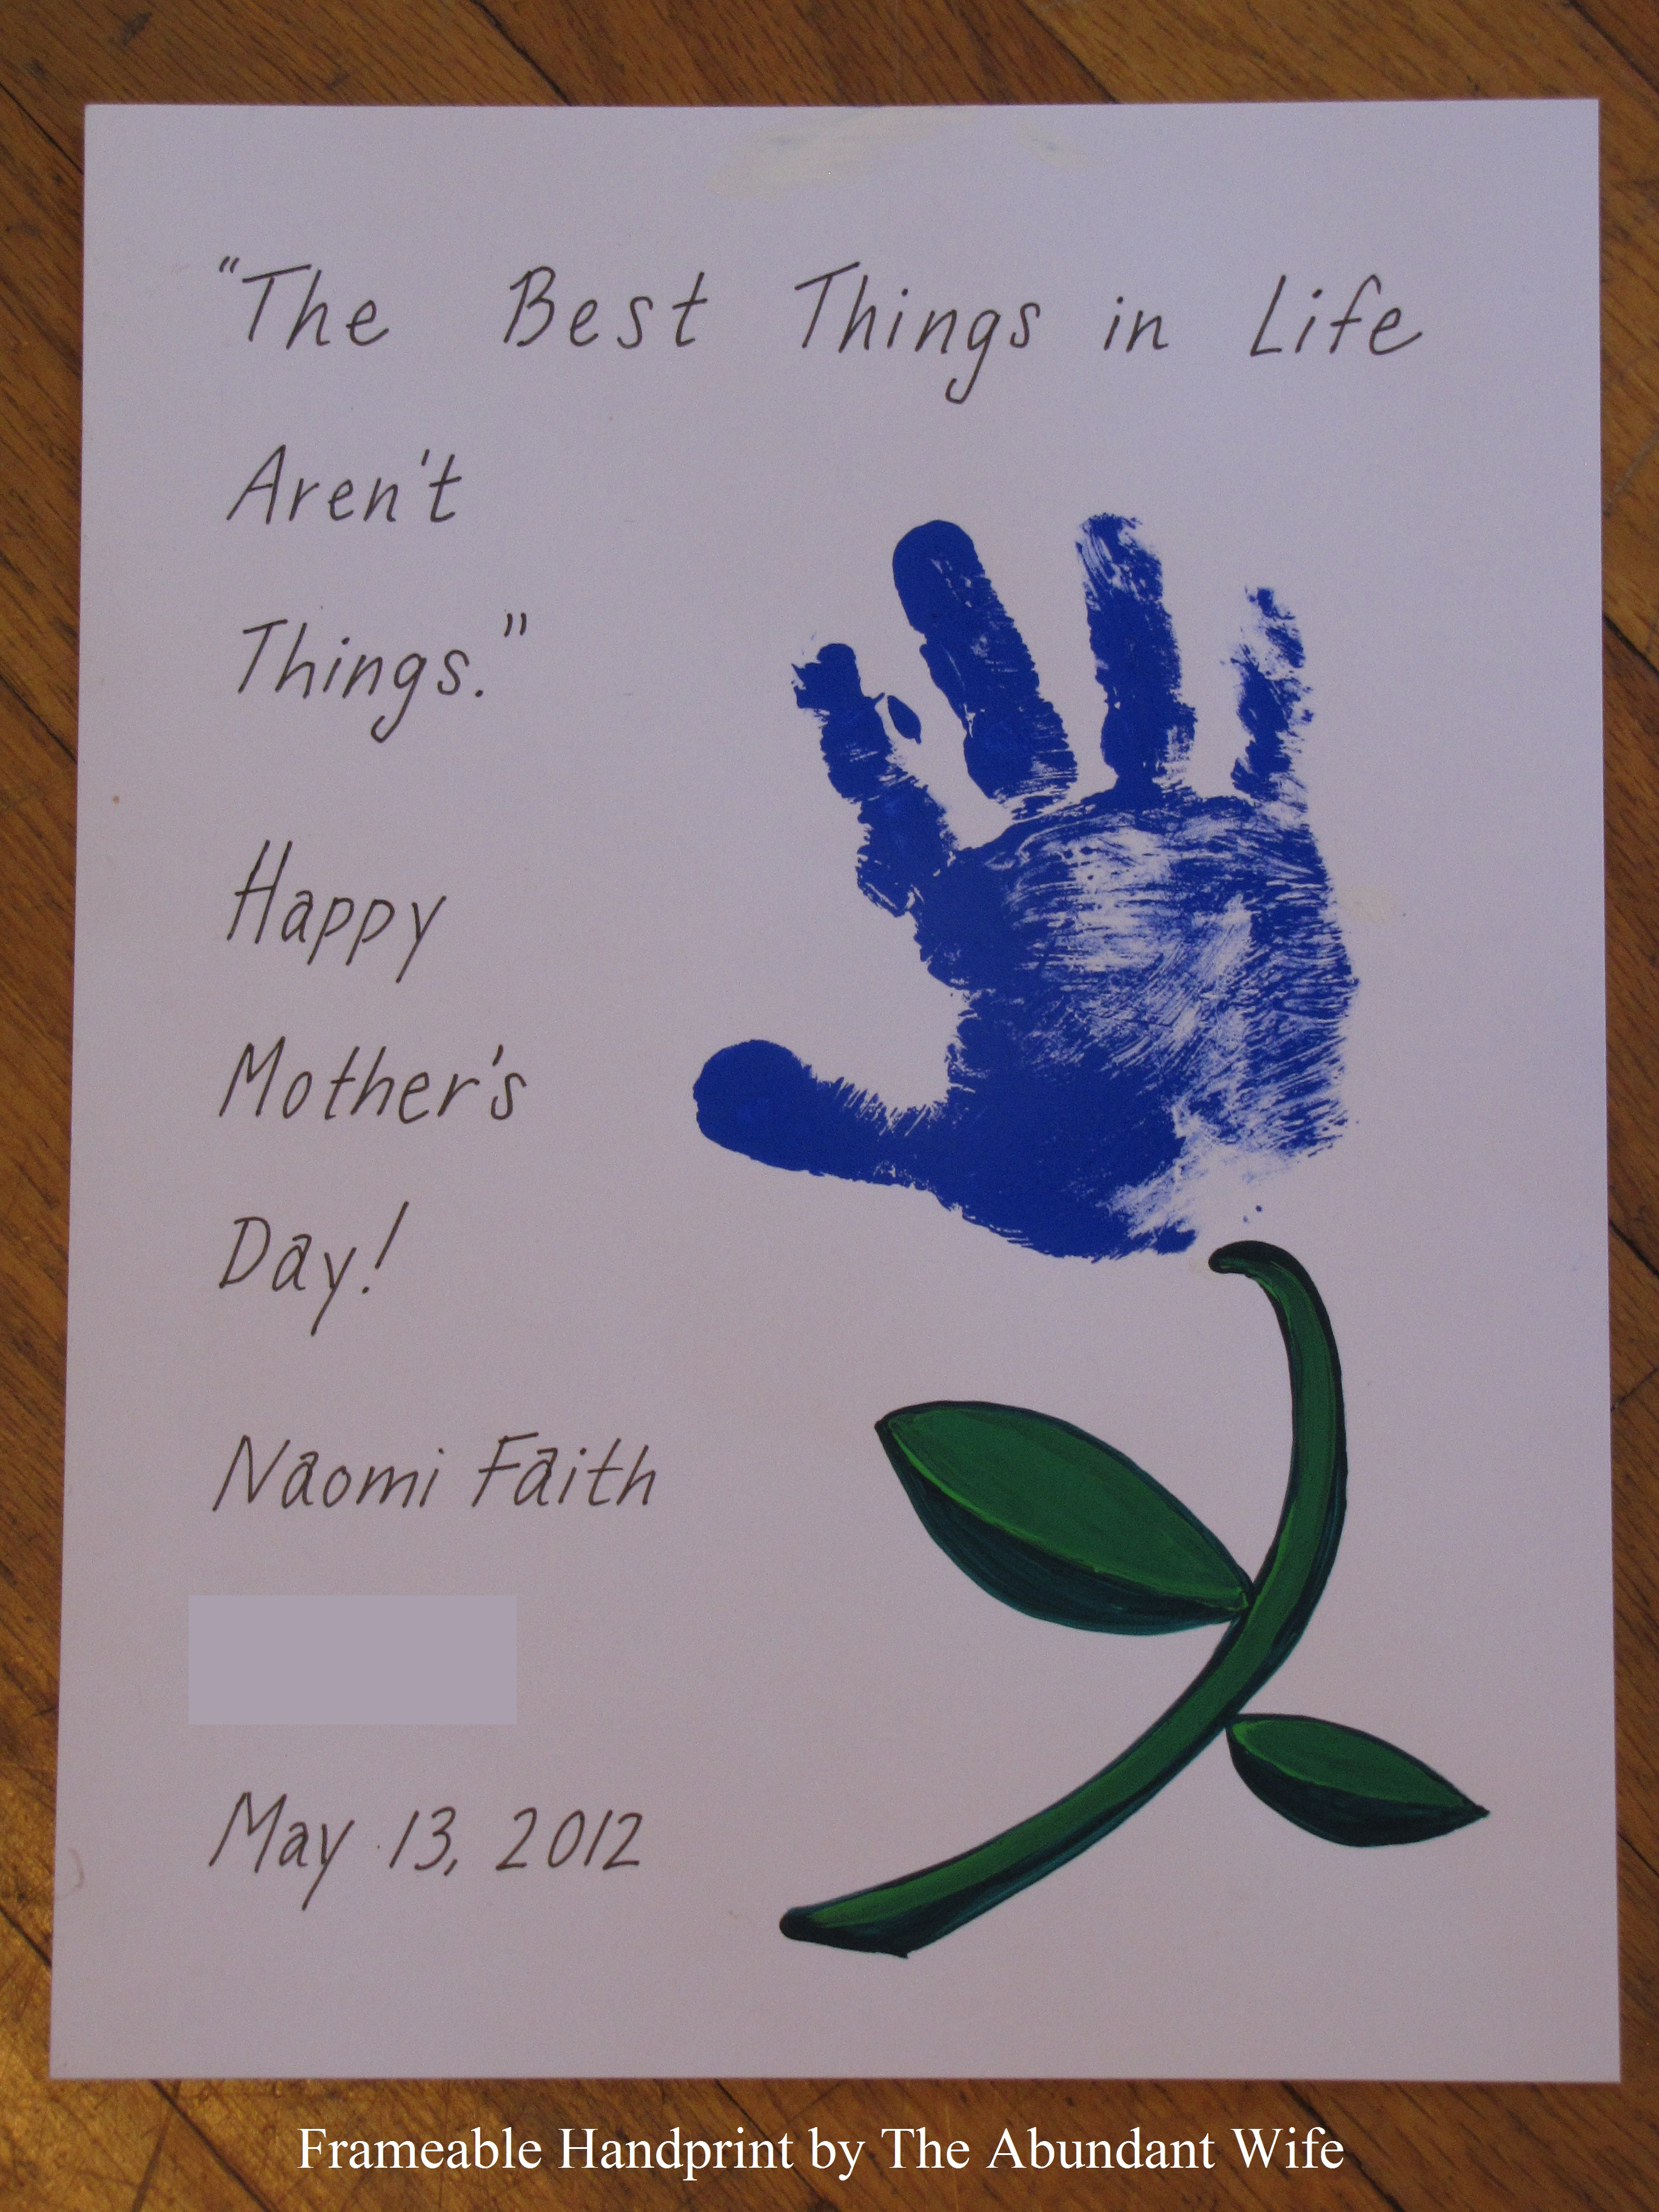 We mailed our handprint flowers and our (FREE from Cardstore and Treat ...